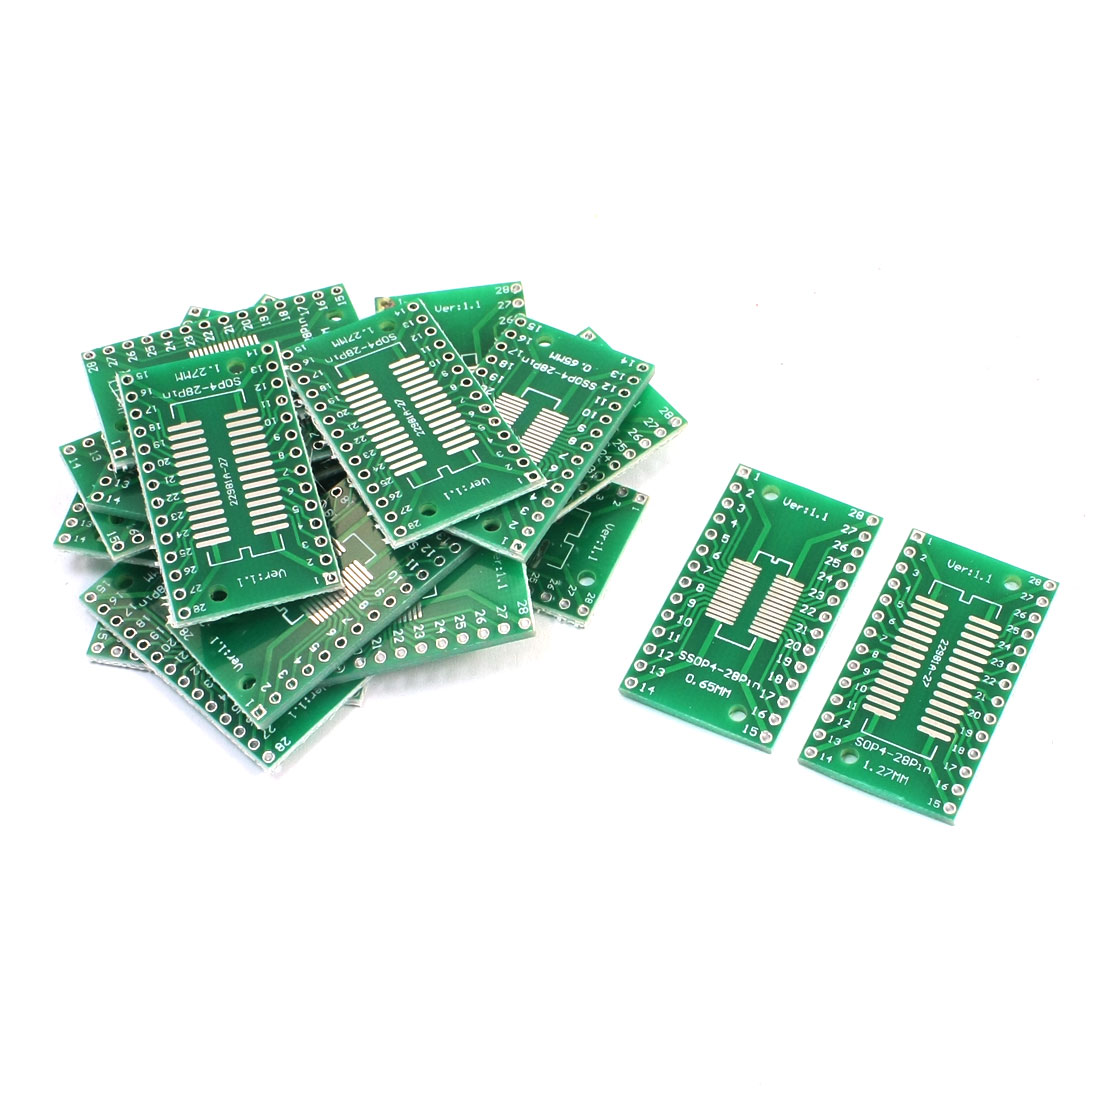 20PCS SOP28 SSOP28 TSSOP28 to DIP28 Two Sides Adapter PCB IC Converter Plate